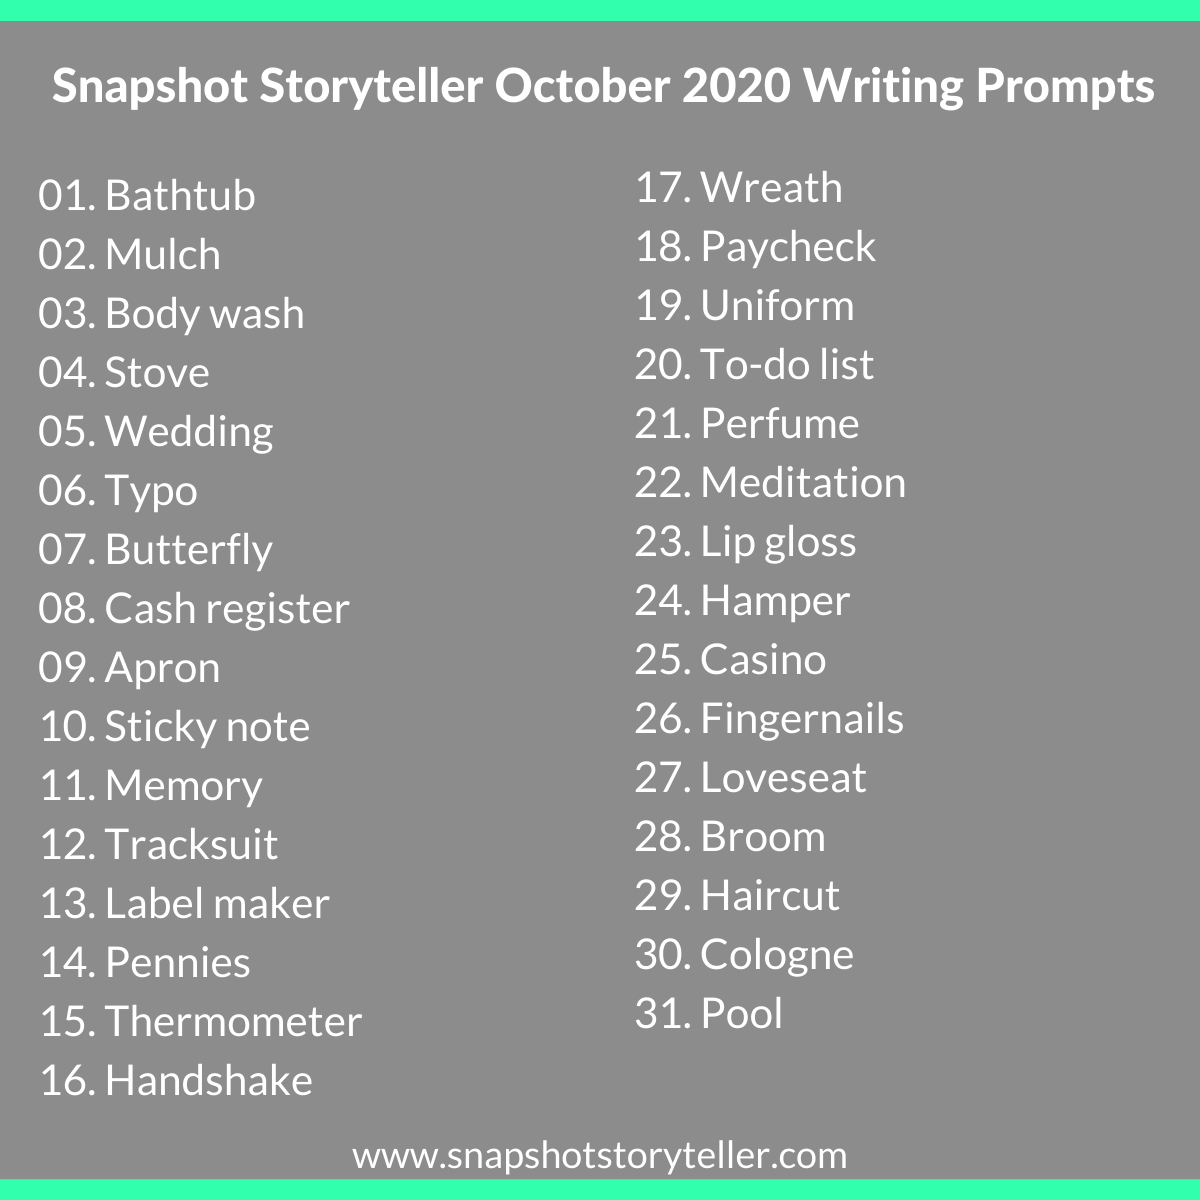 Snapshot Storyteller | October 2020 Writing Prompts | www.snapshotstoryteller.com | #amwriting #SnapshotStoryteller #creativestoryteller #creative #storyteller #creativewriter #IWrite  #WriteOn #writersofinstagram #writingprompt #writingprompts